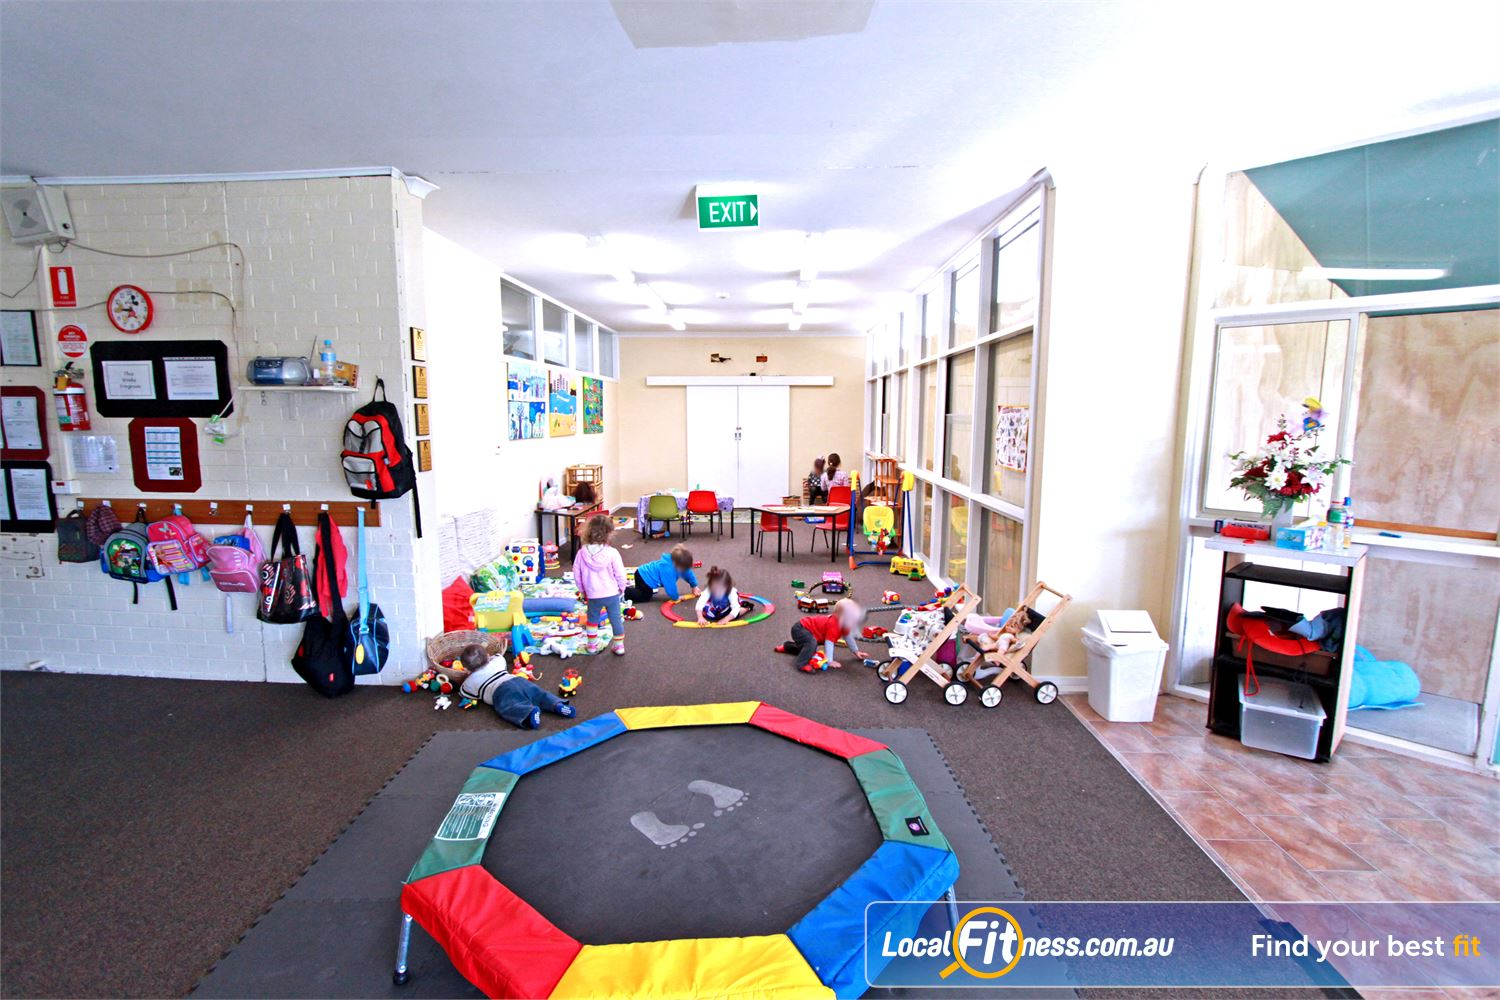 East Keilor Leisure Centre Keilor East We provide an East Keilor registered occasional care and creche service.